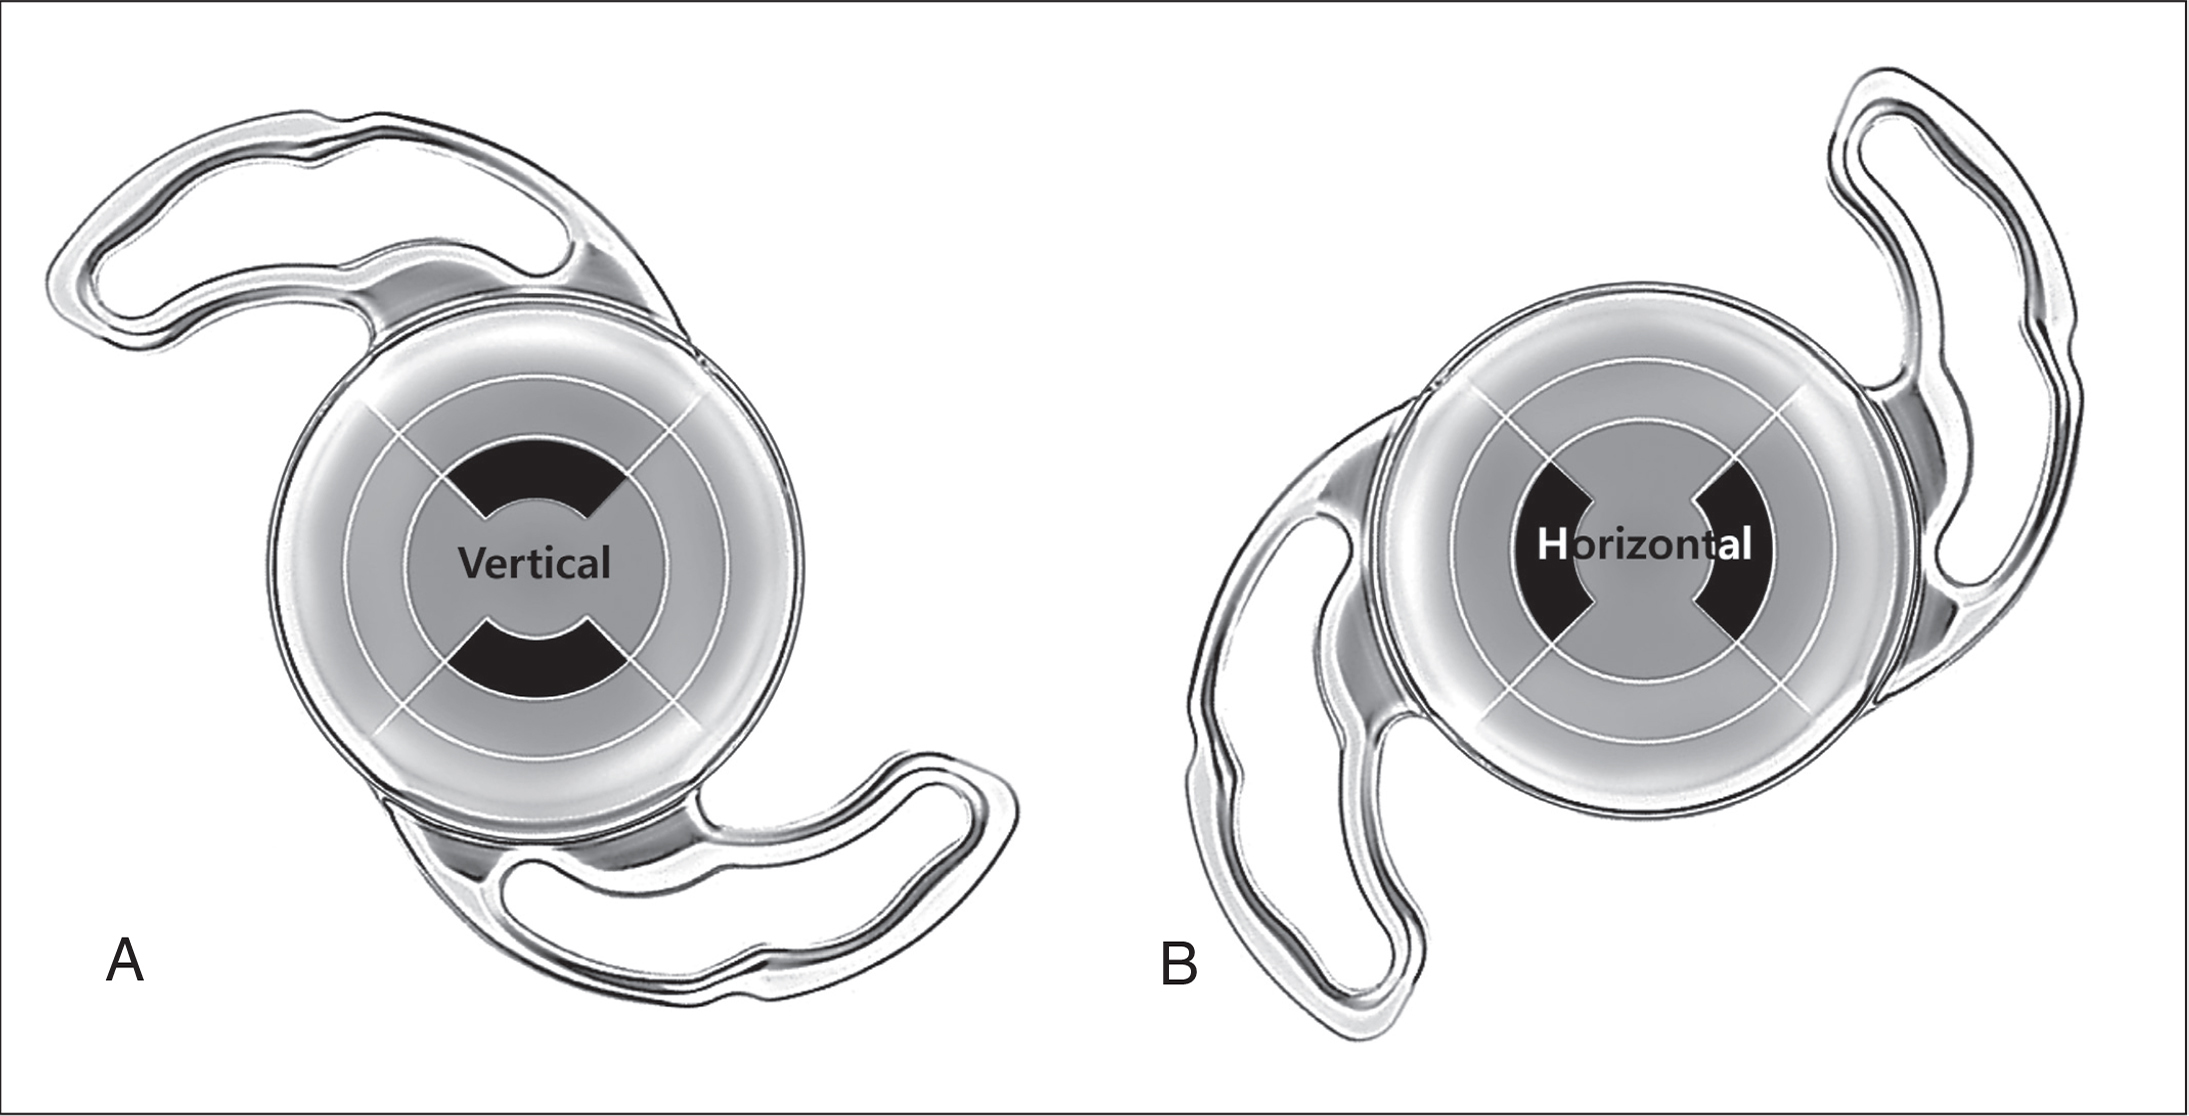 Two Precizon Presbyopic NVA intraocular lens (Ophtec BV) implantation directions according to the orientation of the first near segment of the lens. (A) Vertical orientation. (B) Horizontal orientation.